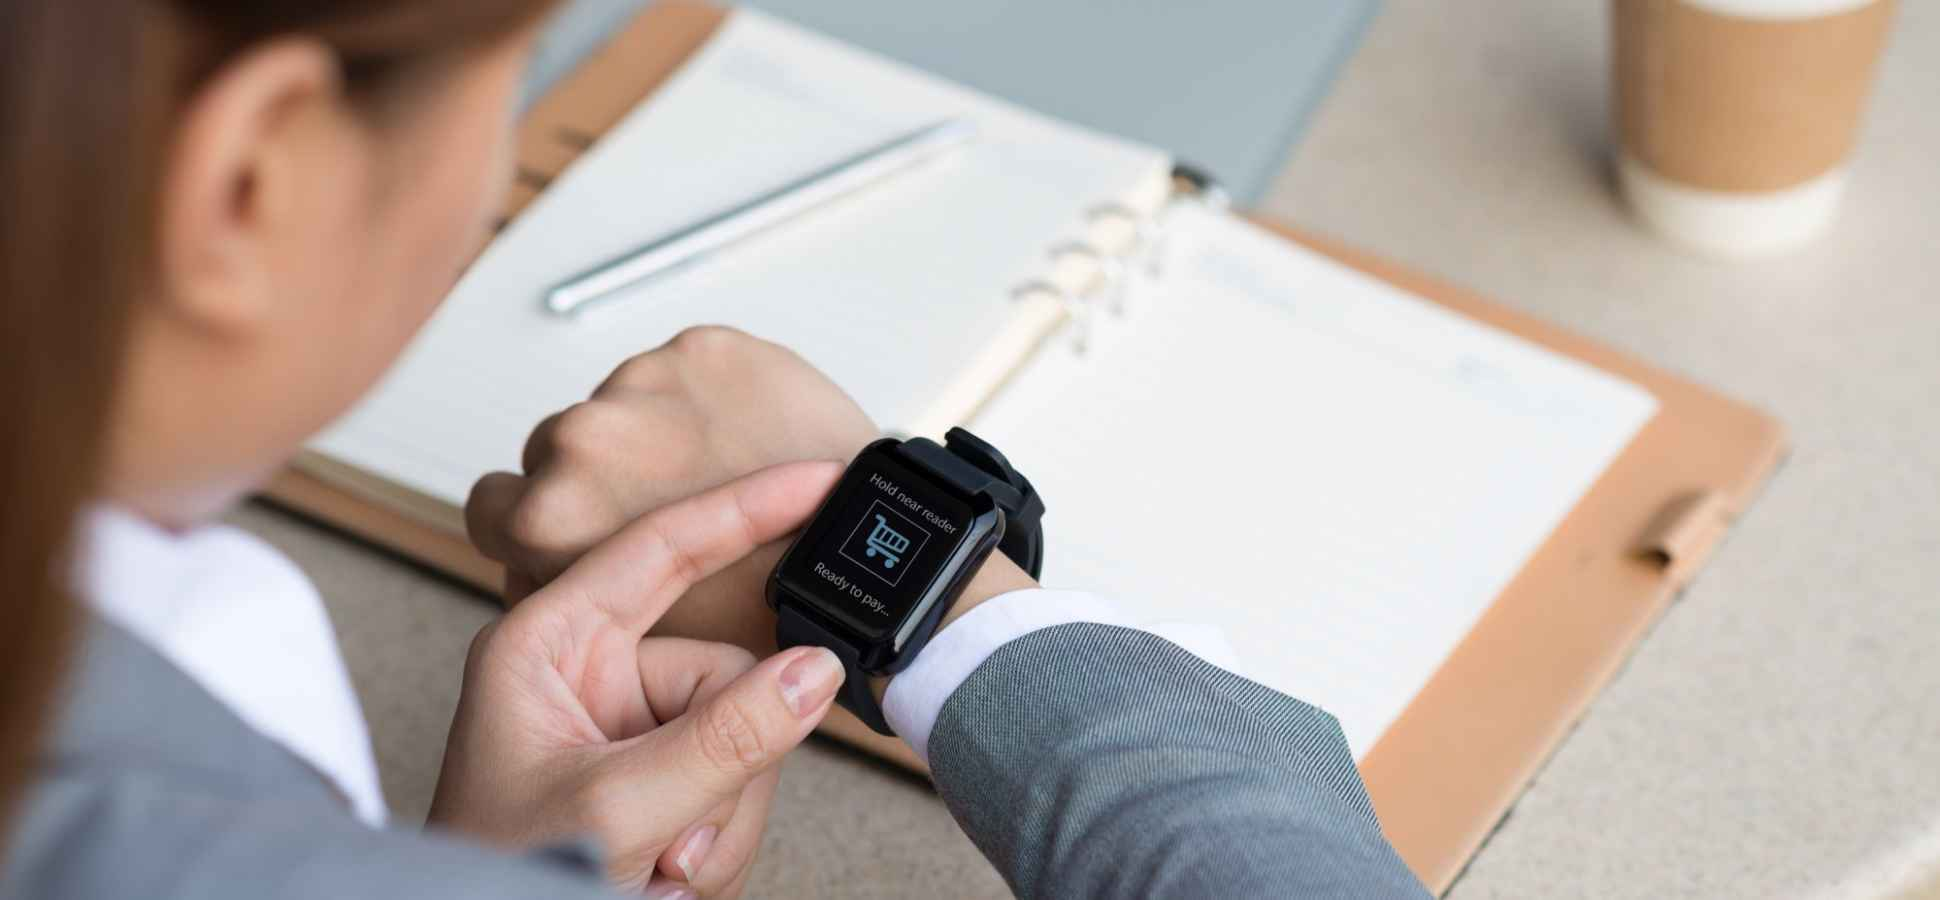 This Report on Wearables from Gartner Will Make You Rethink Your Holiday Shopping List